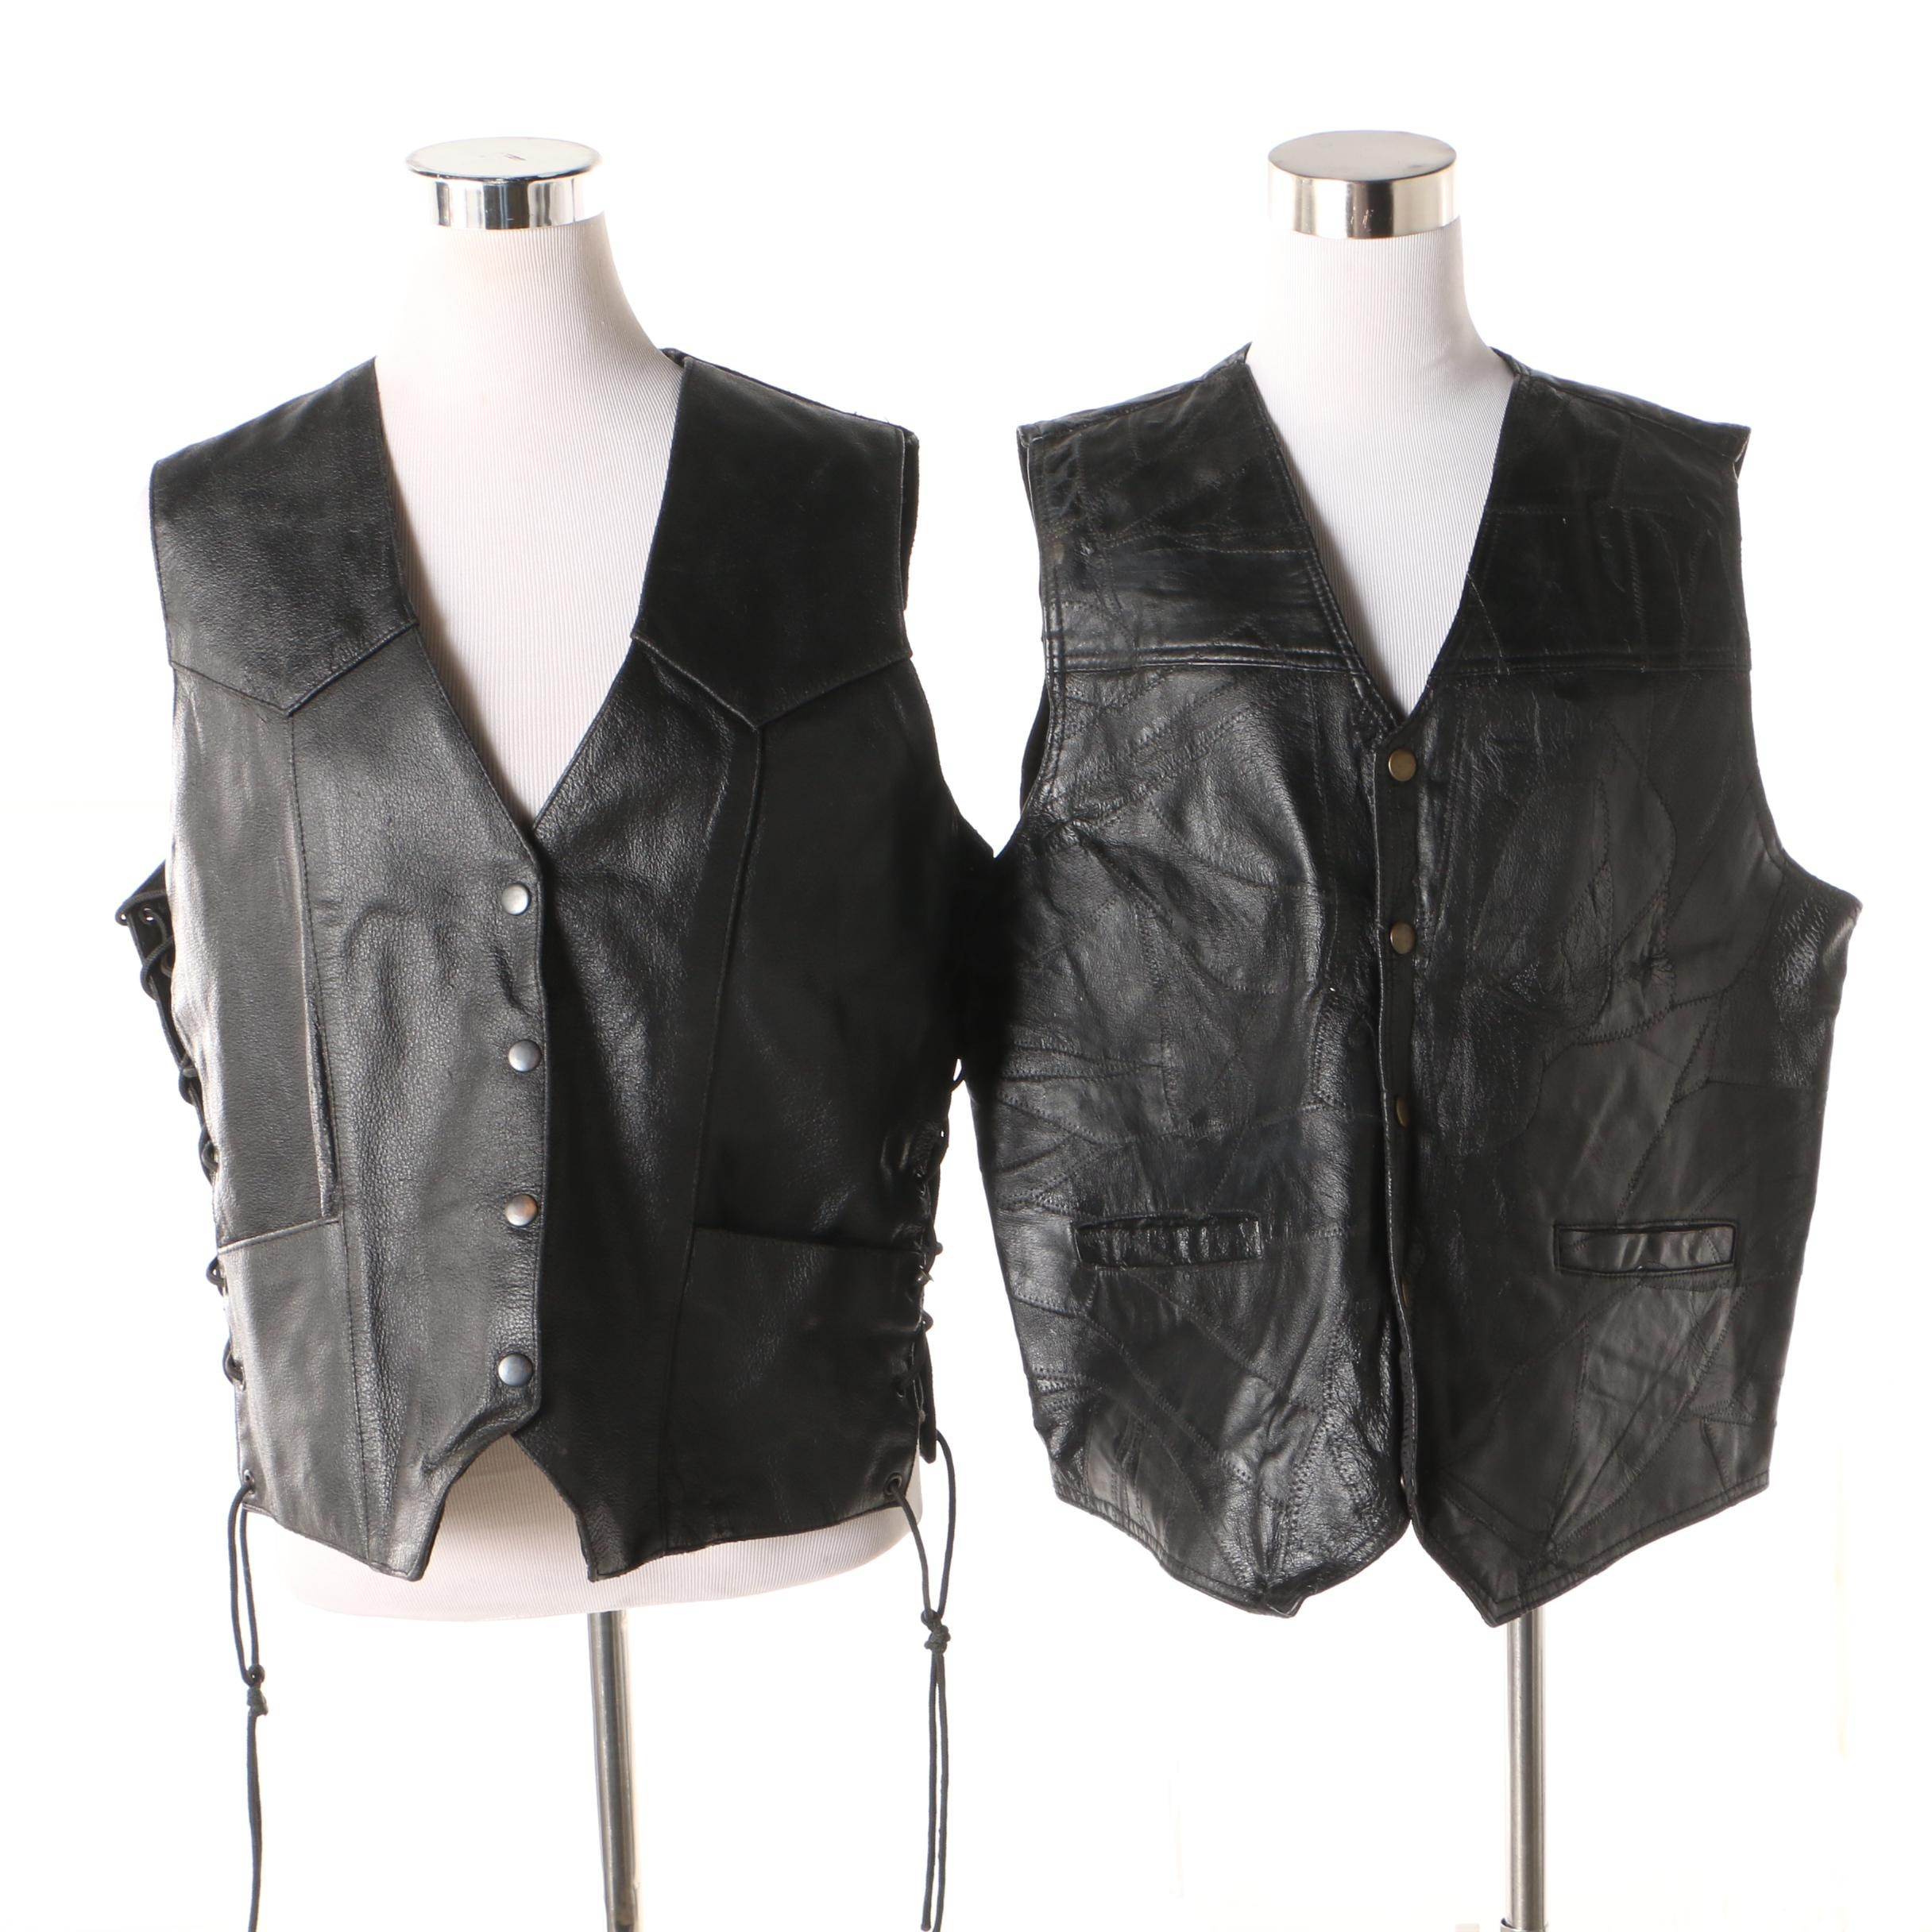 Harley-Davidson and S & S Cycle Black Leather Motorcycle Vests